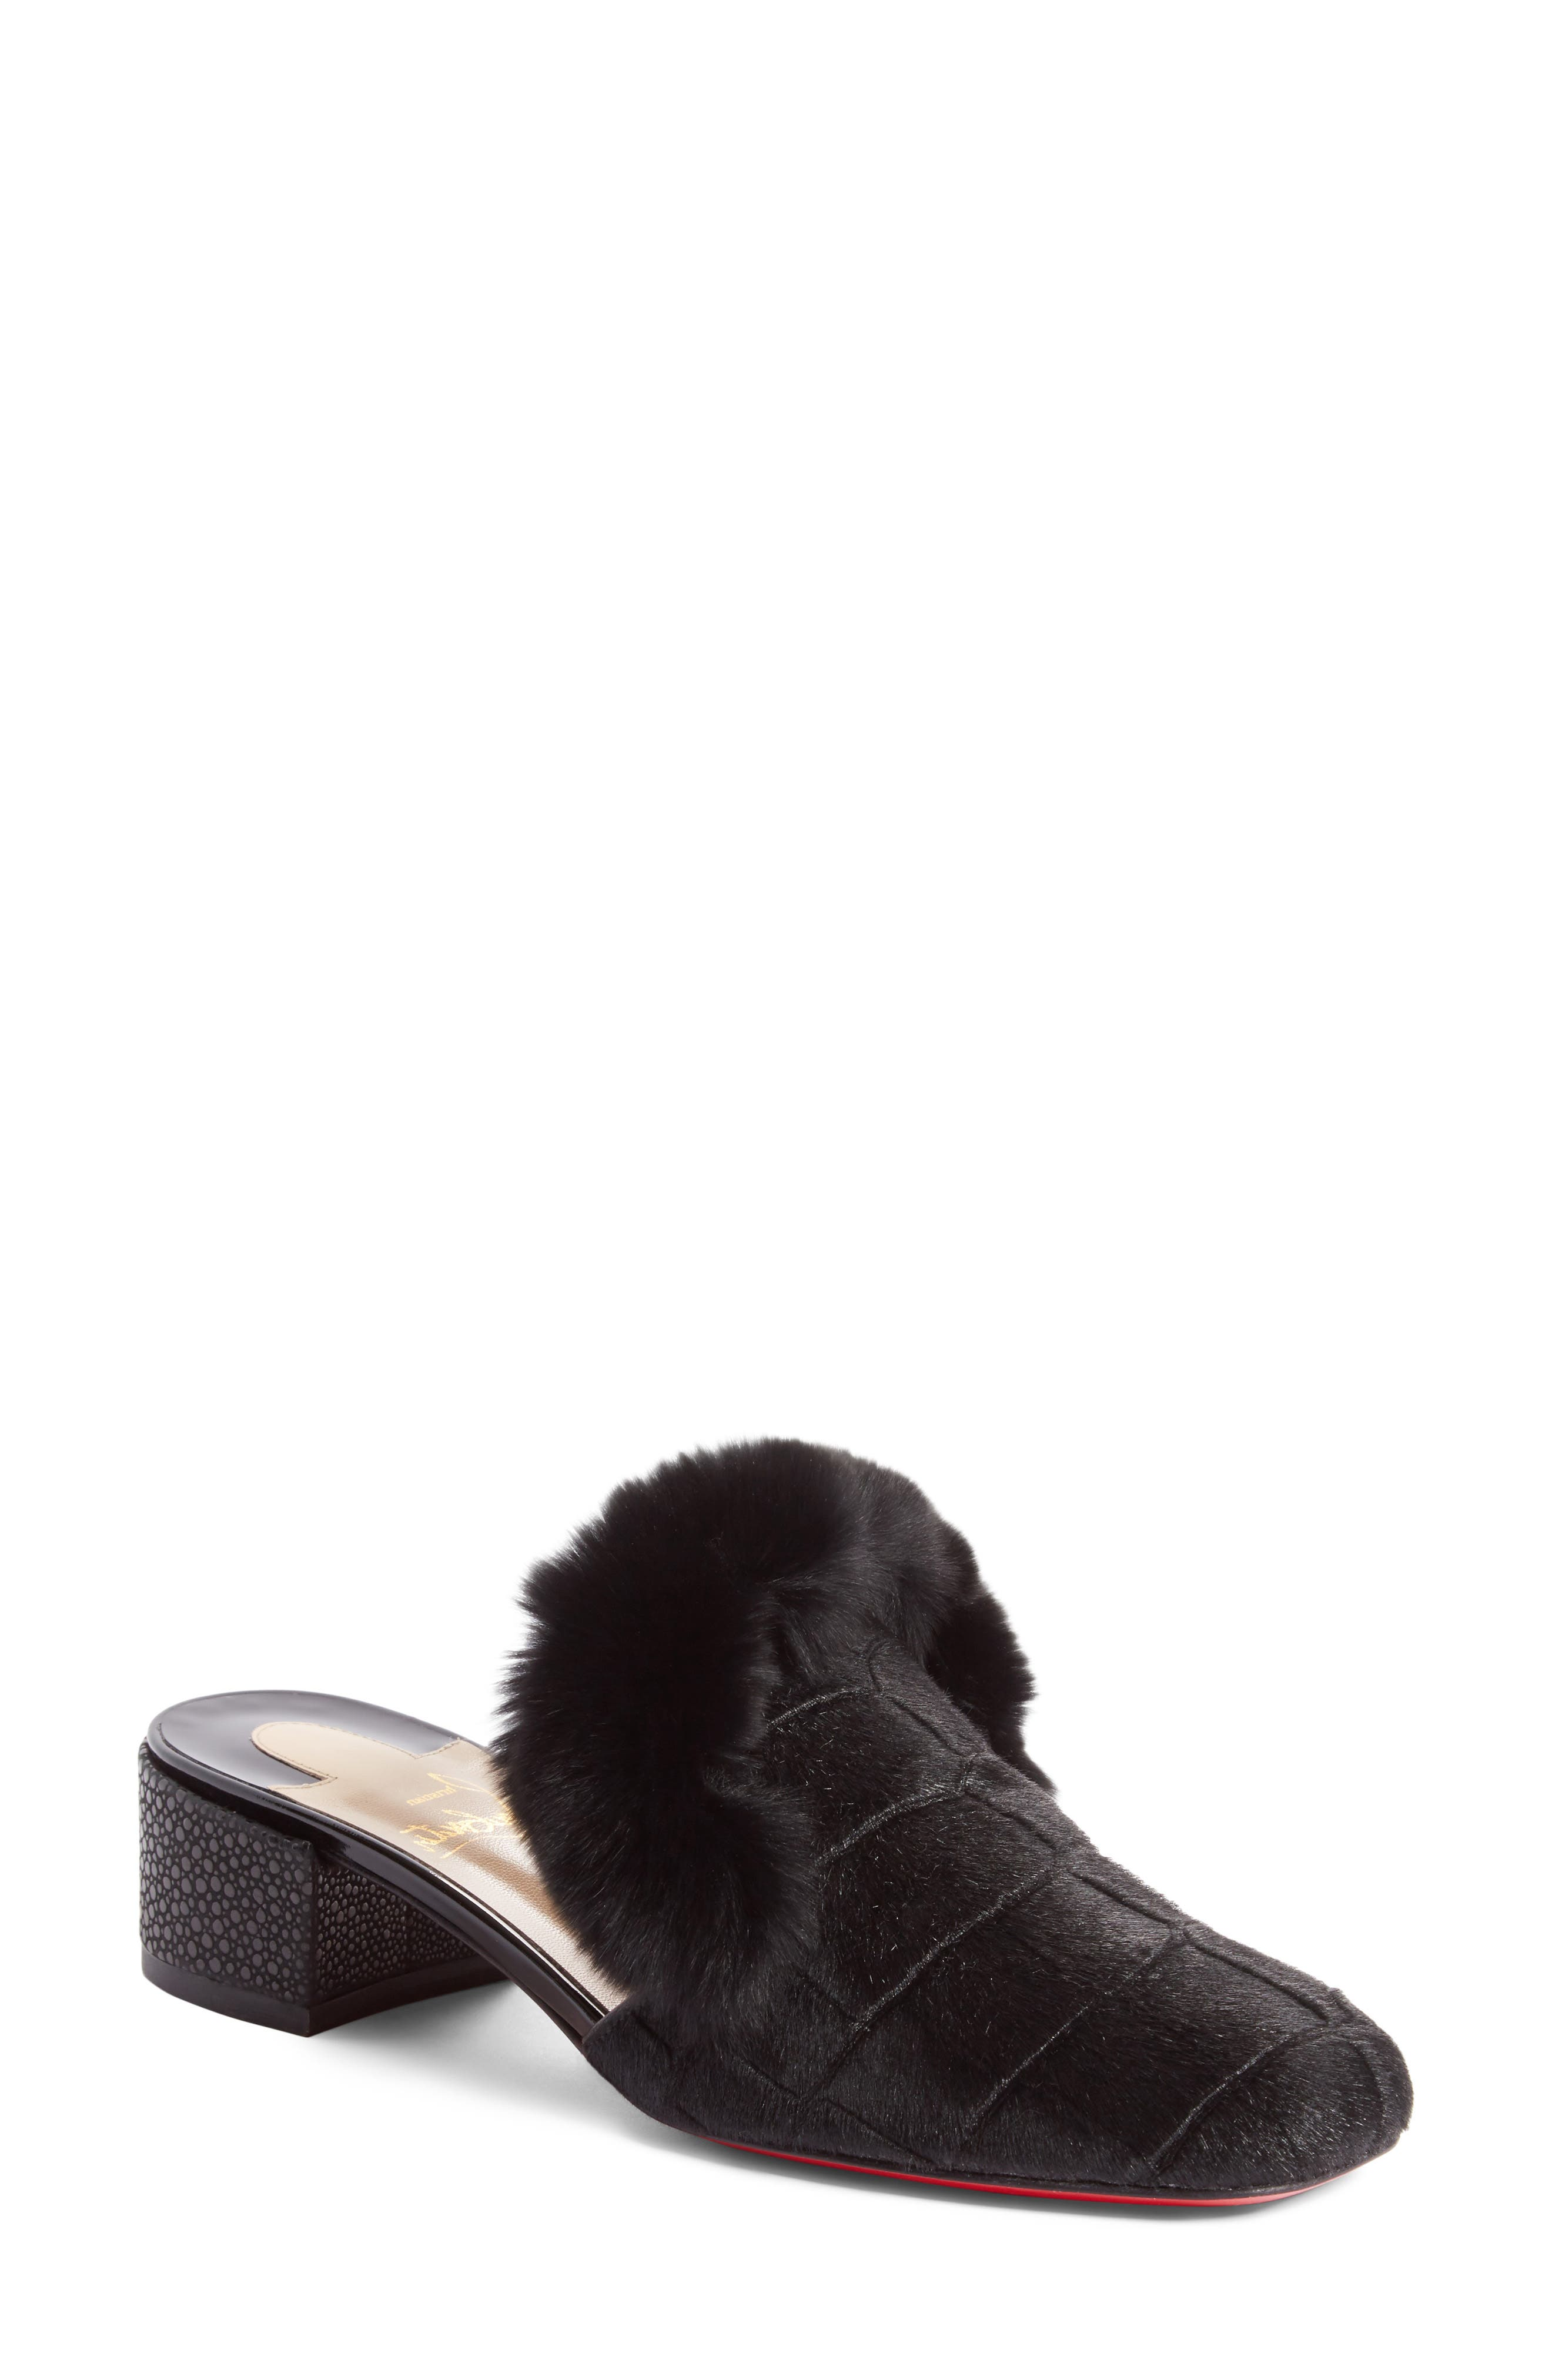 Christian Louboutin Boudiva Genuine Rabbit Fur Trim Mule (Women)